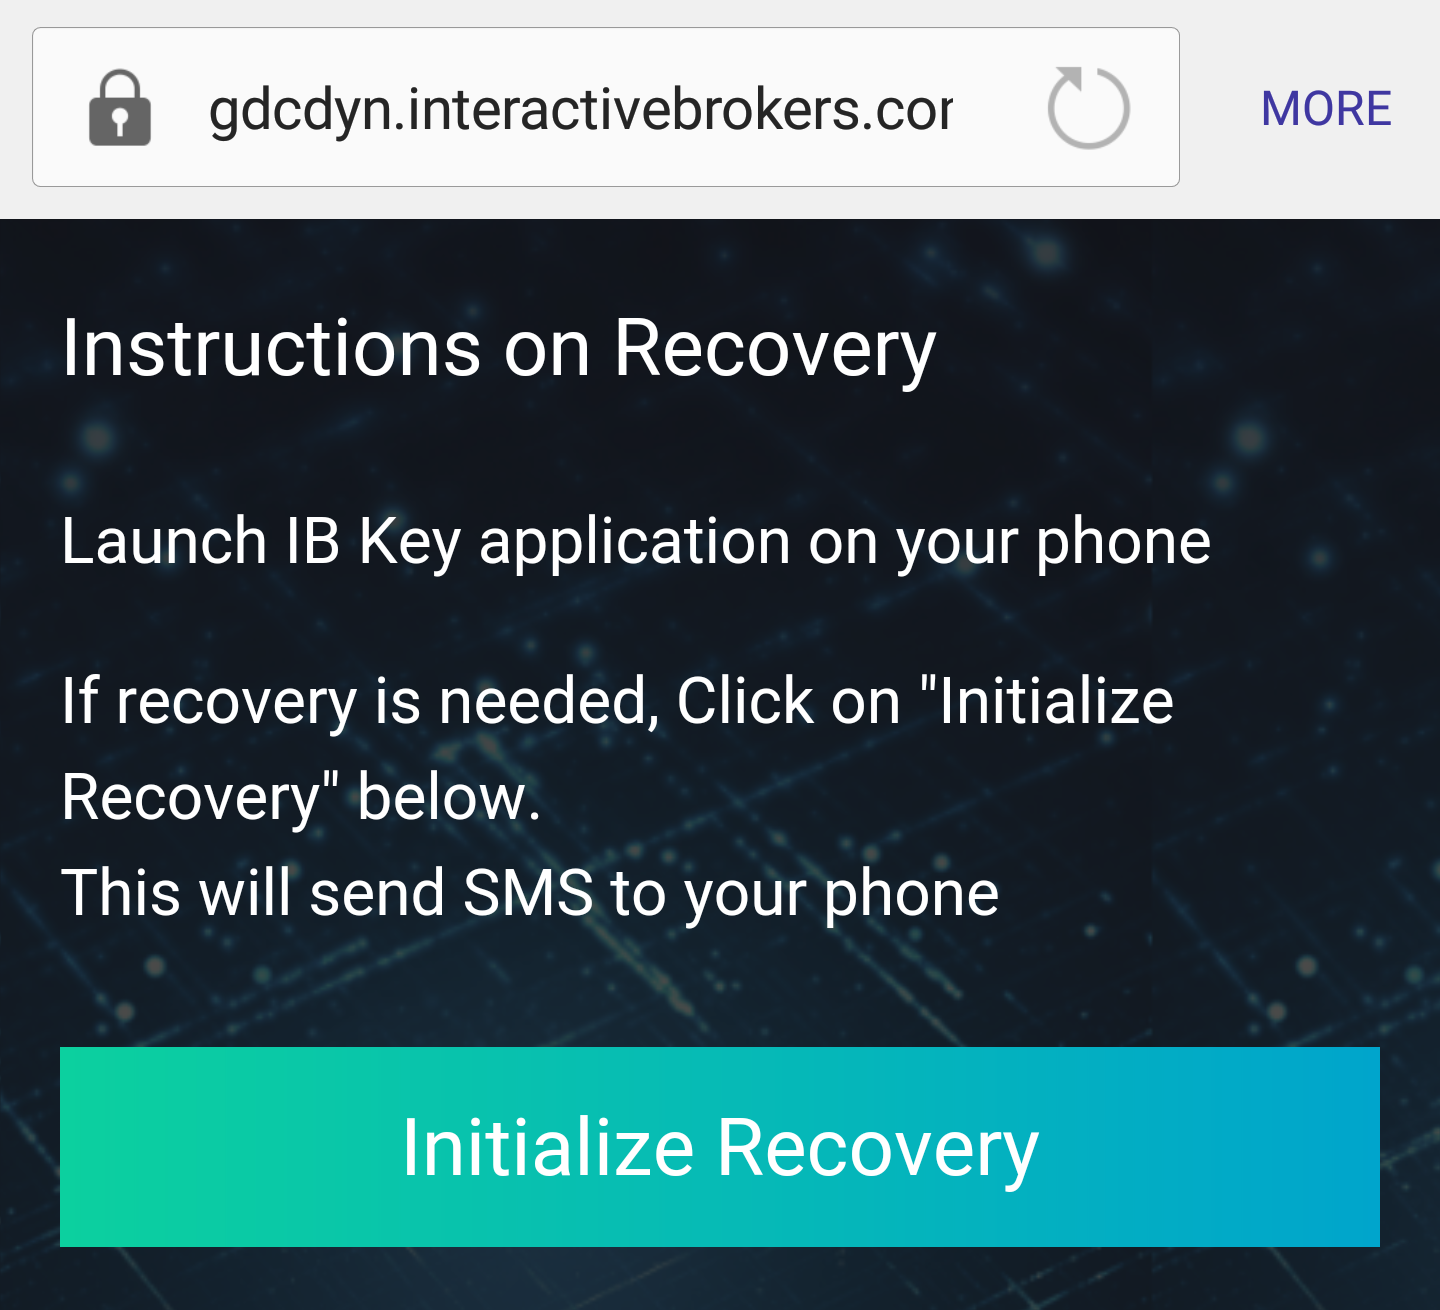 Instructions on Recovery